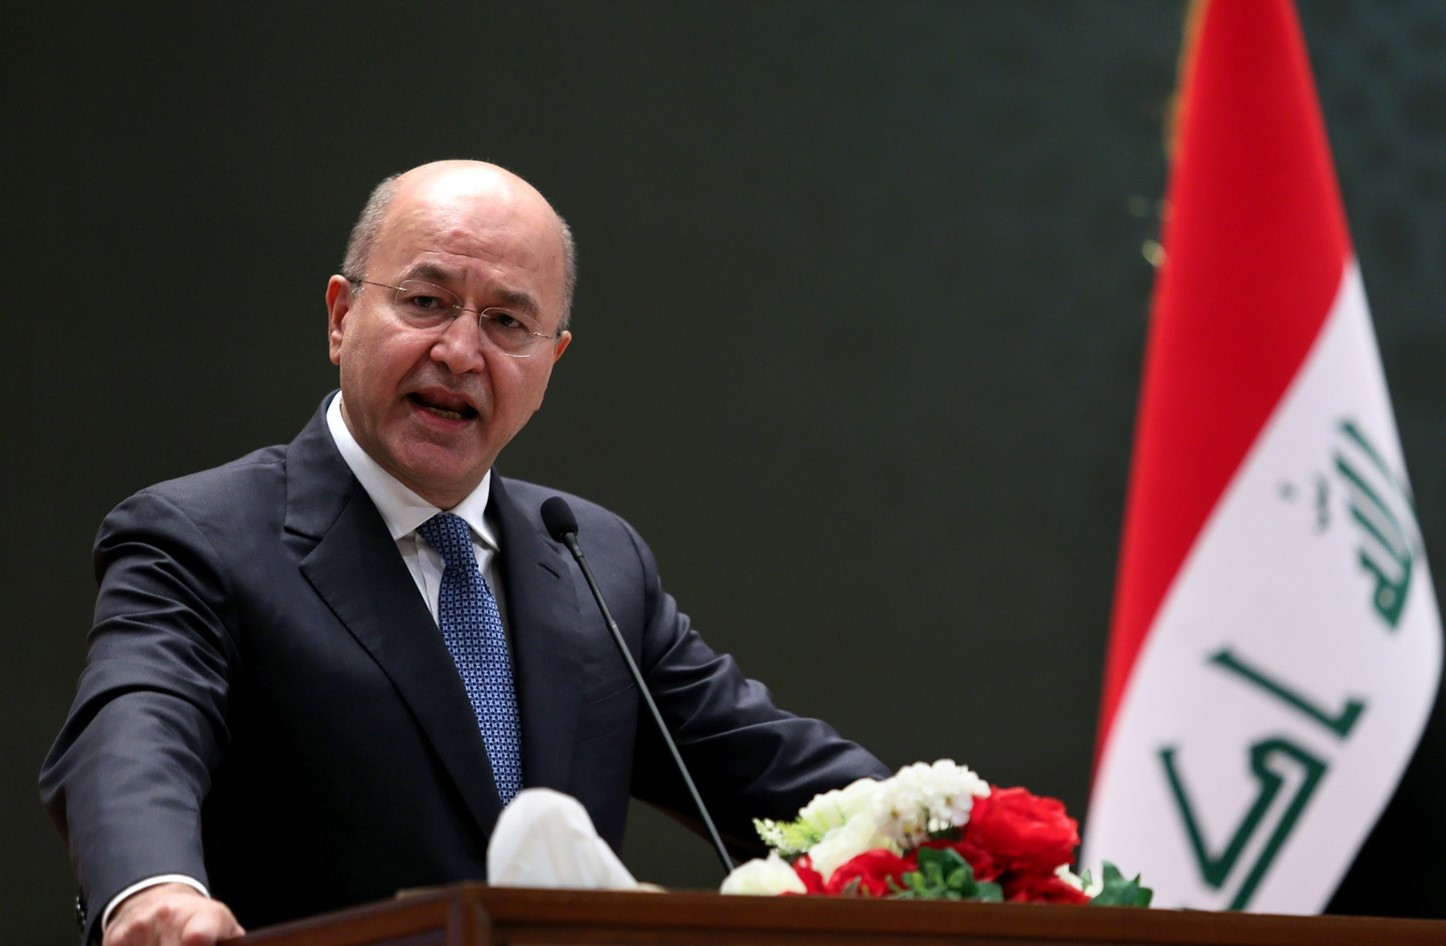 The Iraqi President: The openness of Iraq to its regional and international environment supports efforts to reduce tensions INAF_20210426194642822.jpg?404=d&h=946&w=1446&scale=both&mode=crop&c.focus=faces&c.finalmode=crop&f.threshold=2,4&f